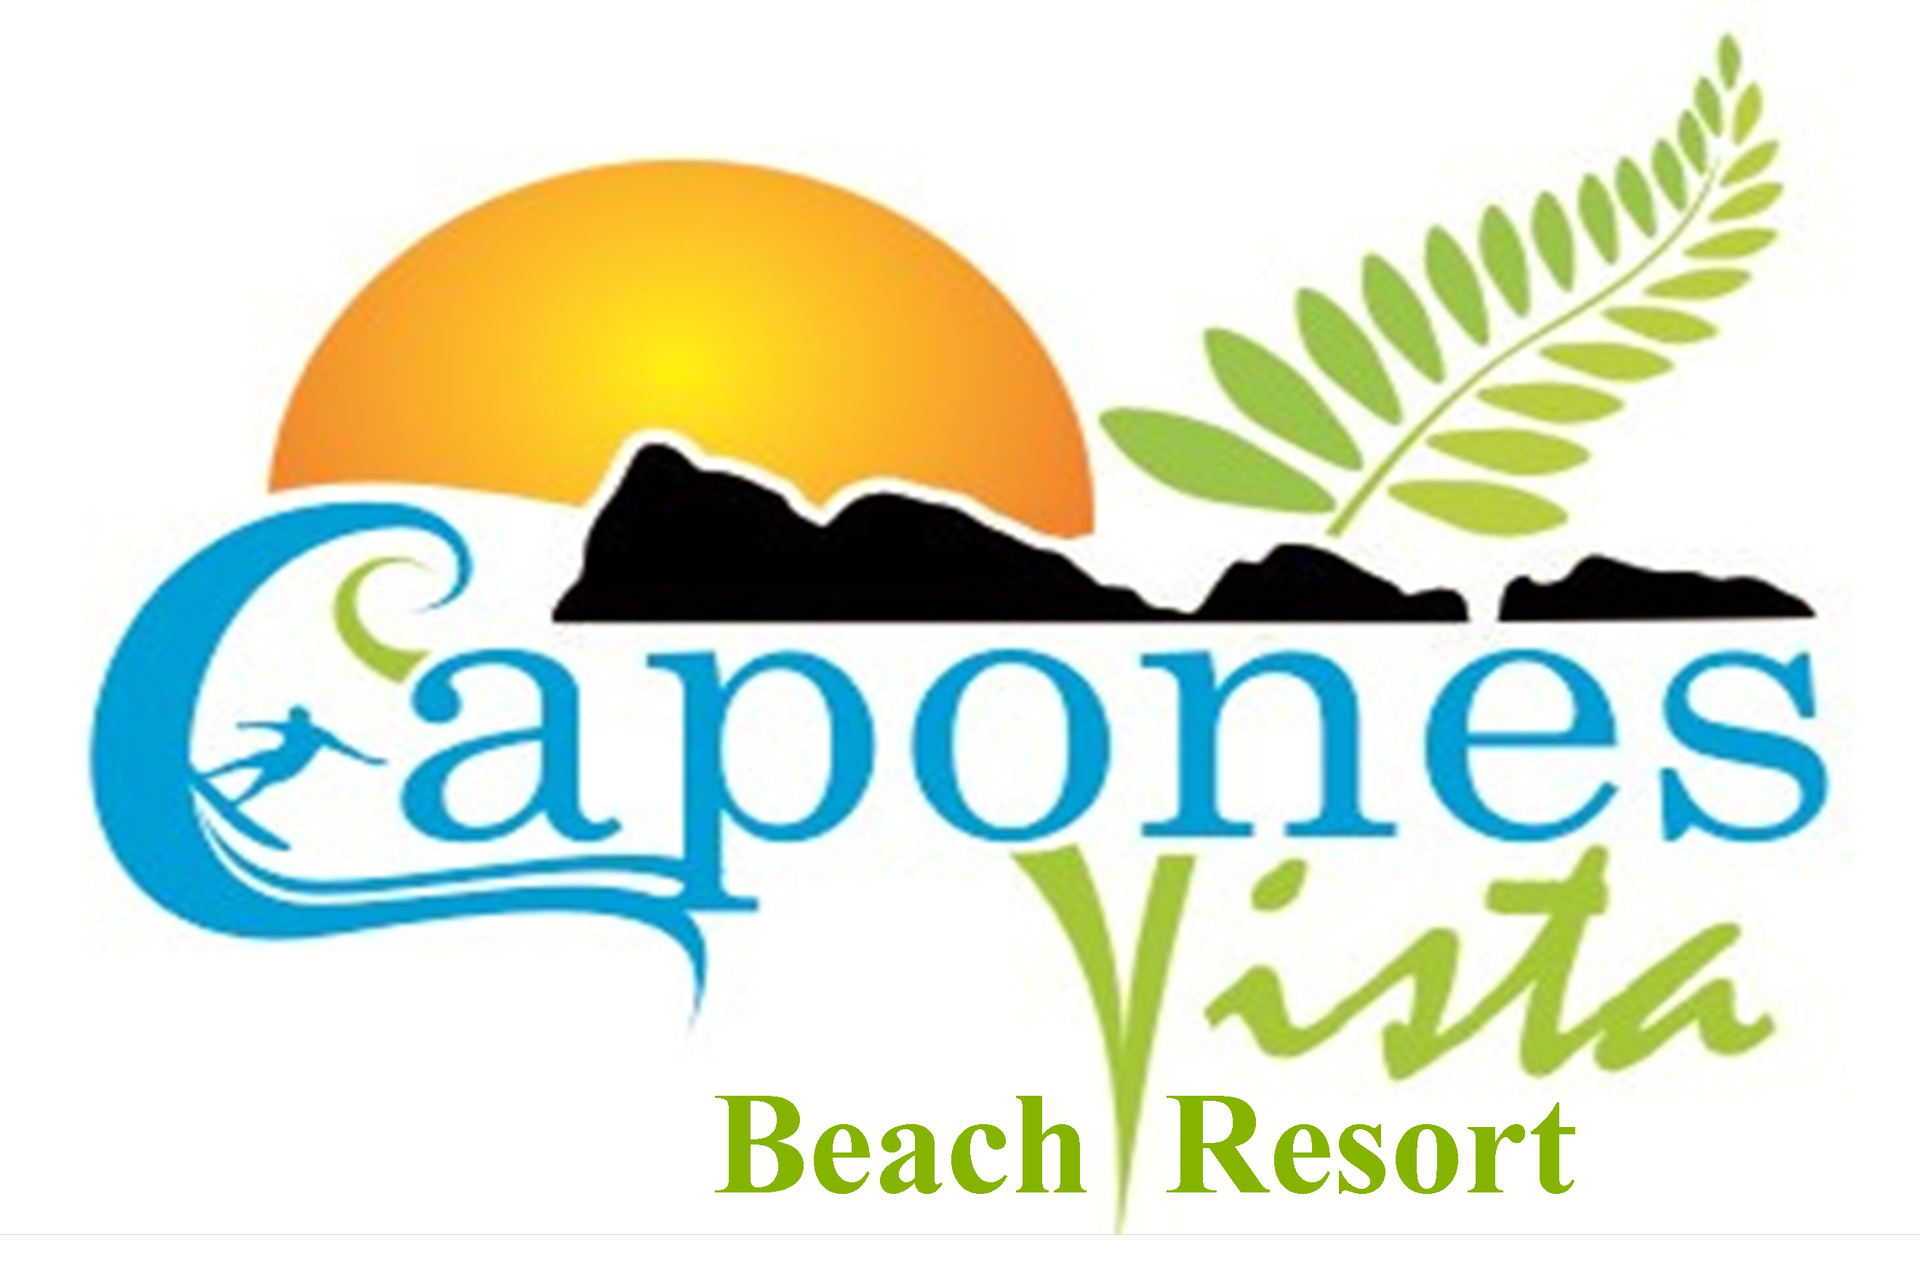 Capones Vista Beach Resort